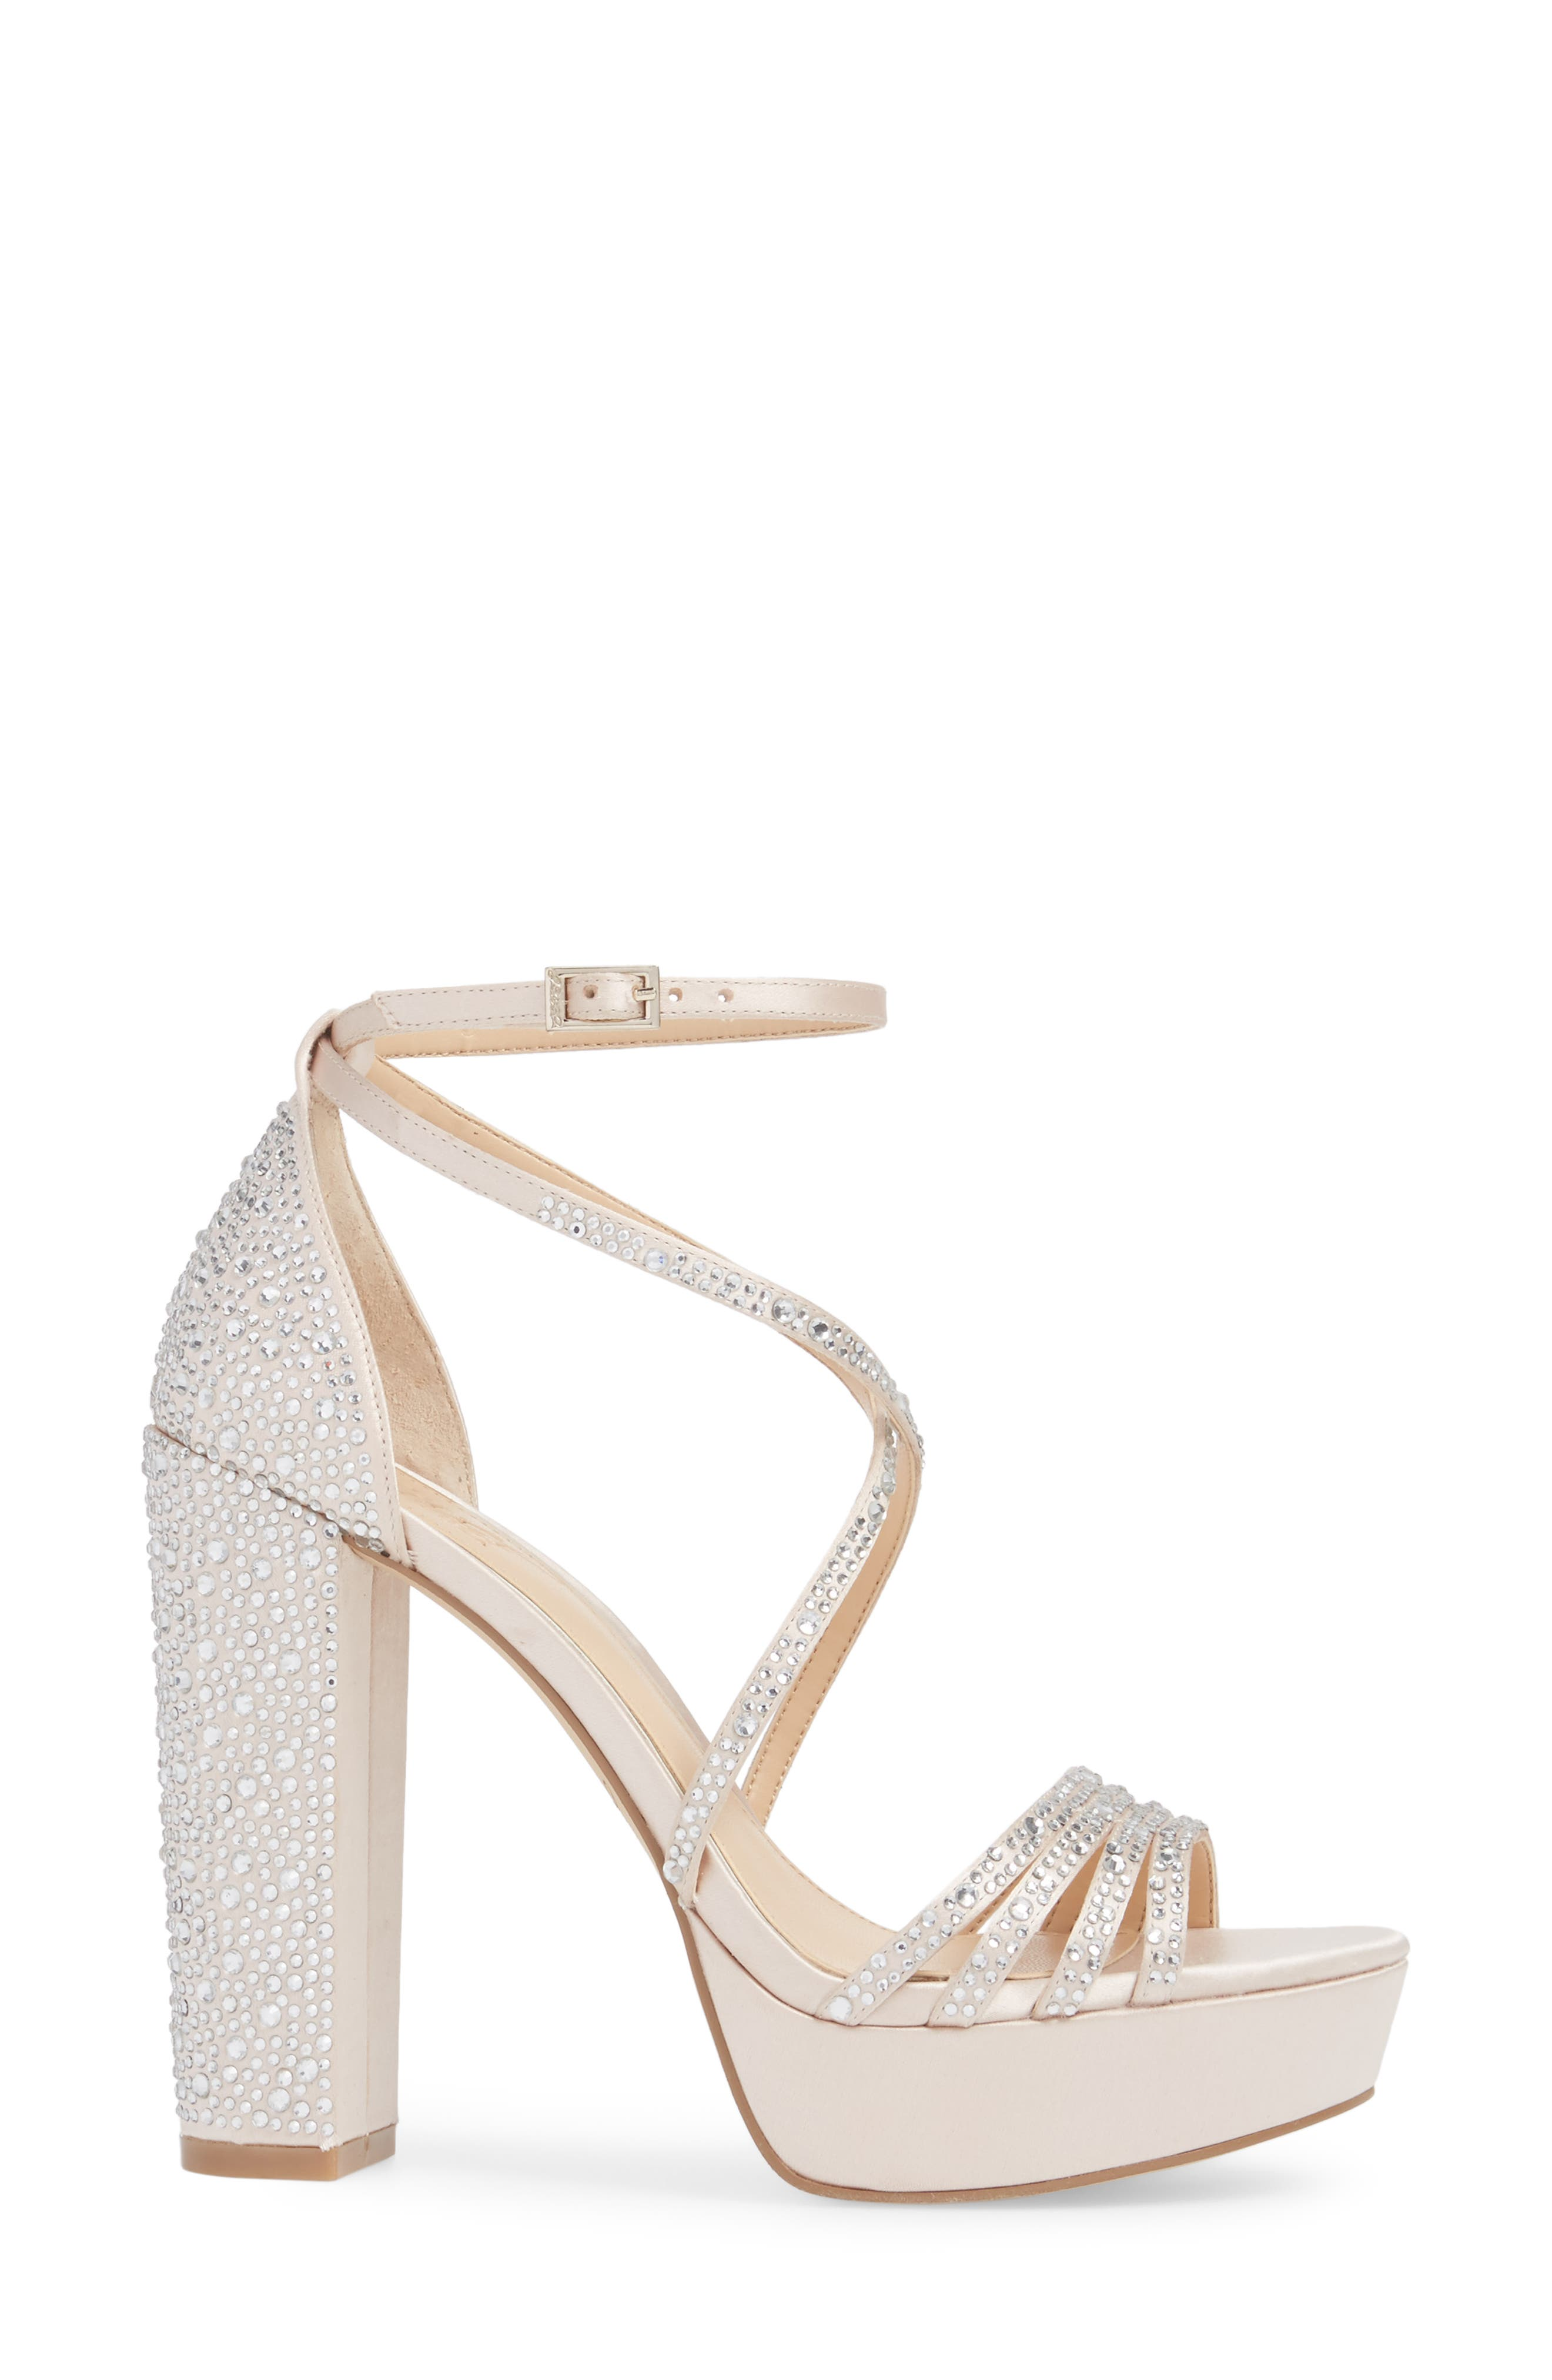 Tarah Crystal Embellished Platform Sandal,                             Alternate thumbnail 9, color,